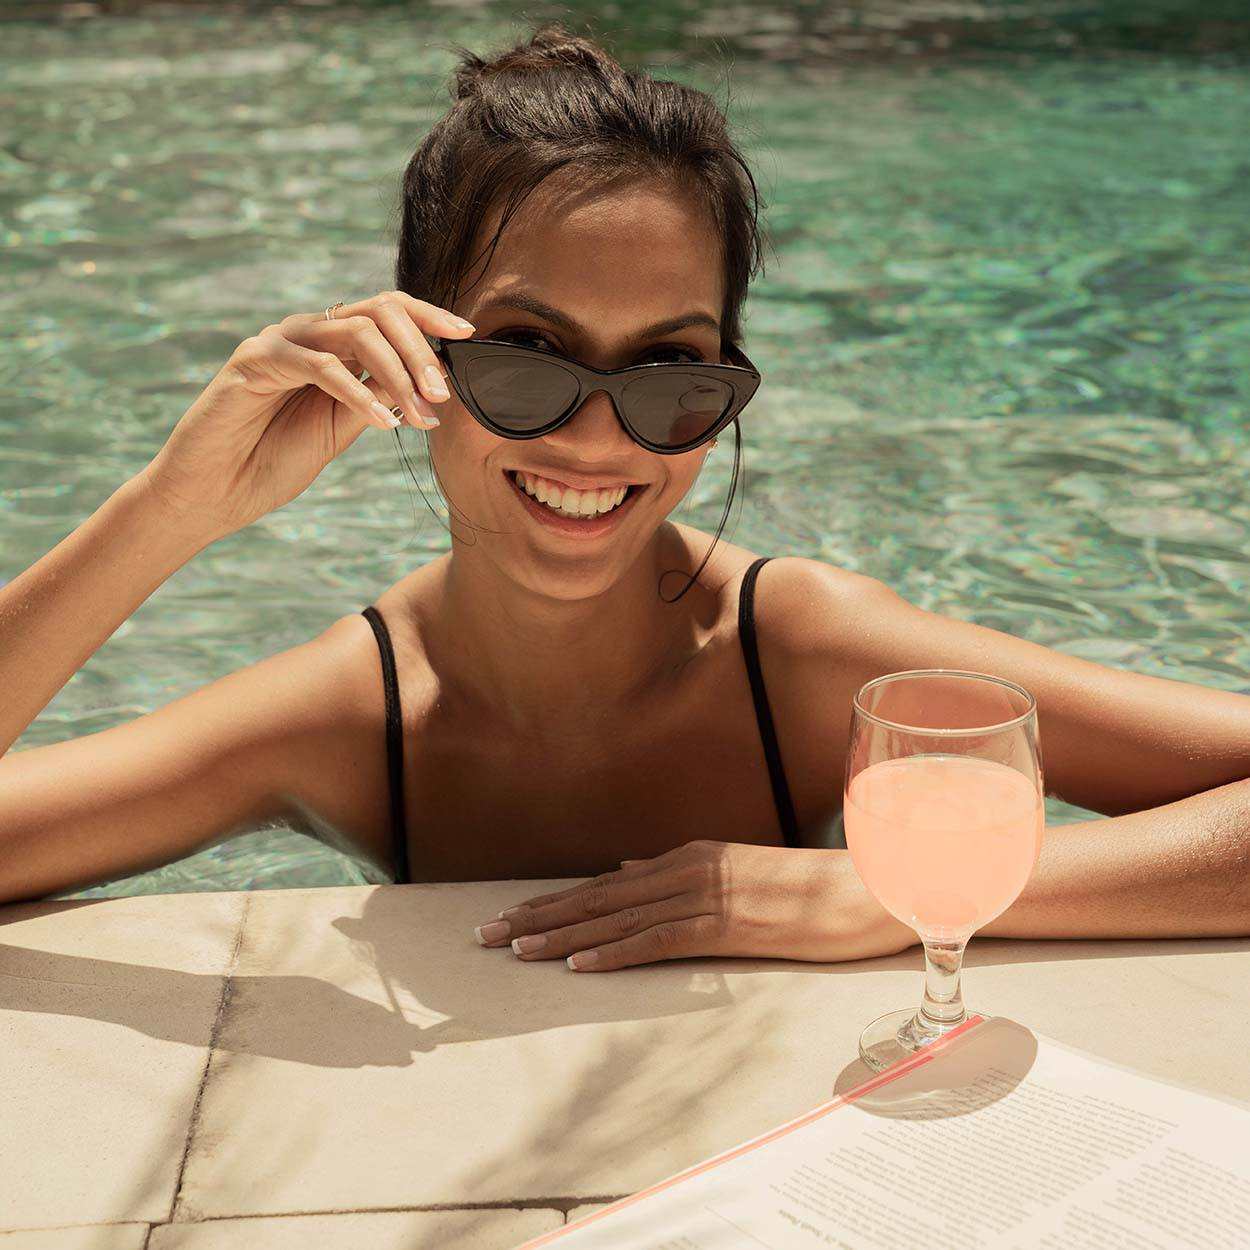 Woman smiling in a pool with a glass of rosé